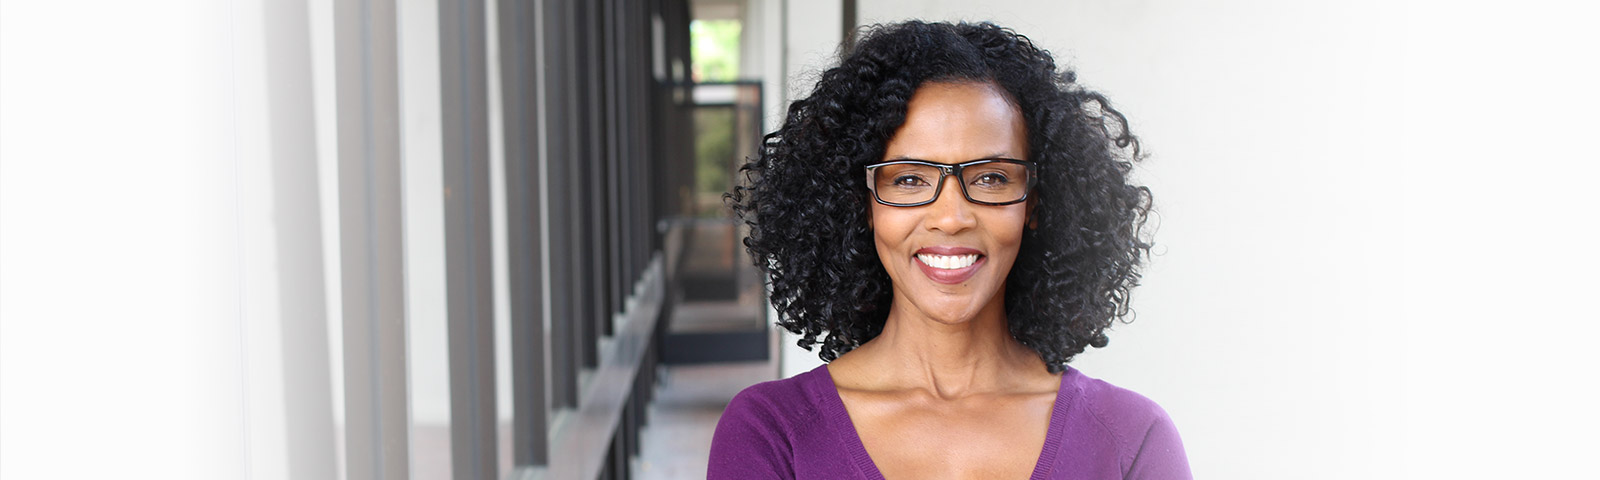 black woman with glasses smiling